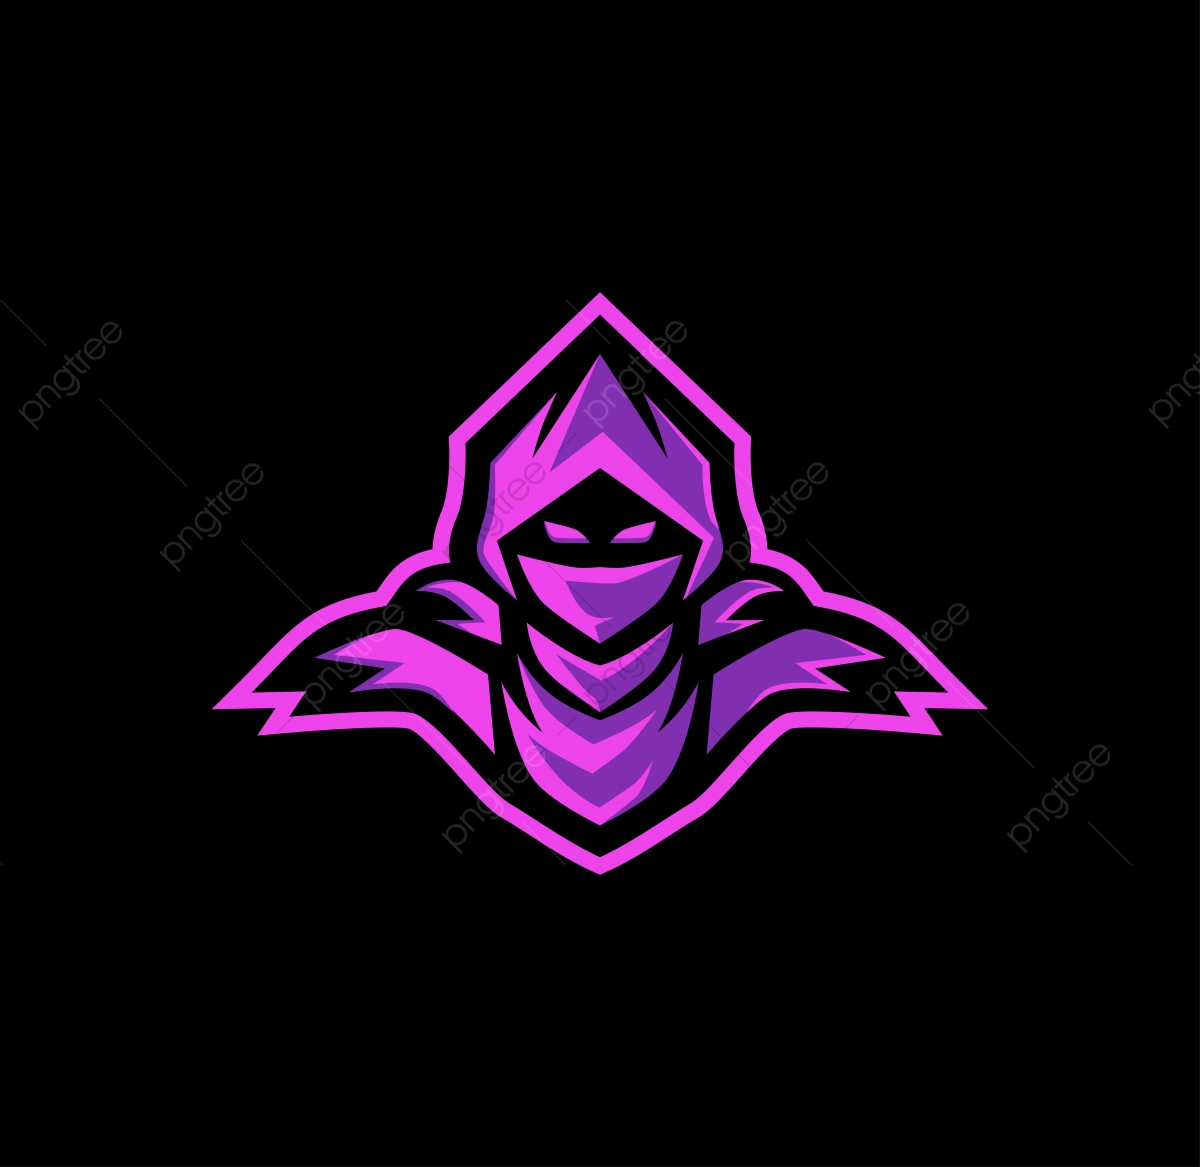 Esport Png Images Vector And Psd Files Free Download On Pngtree